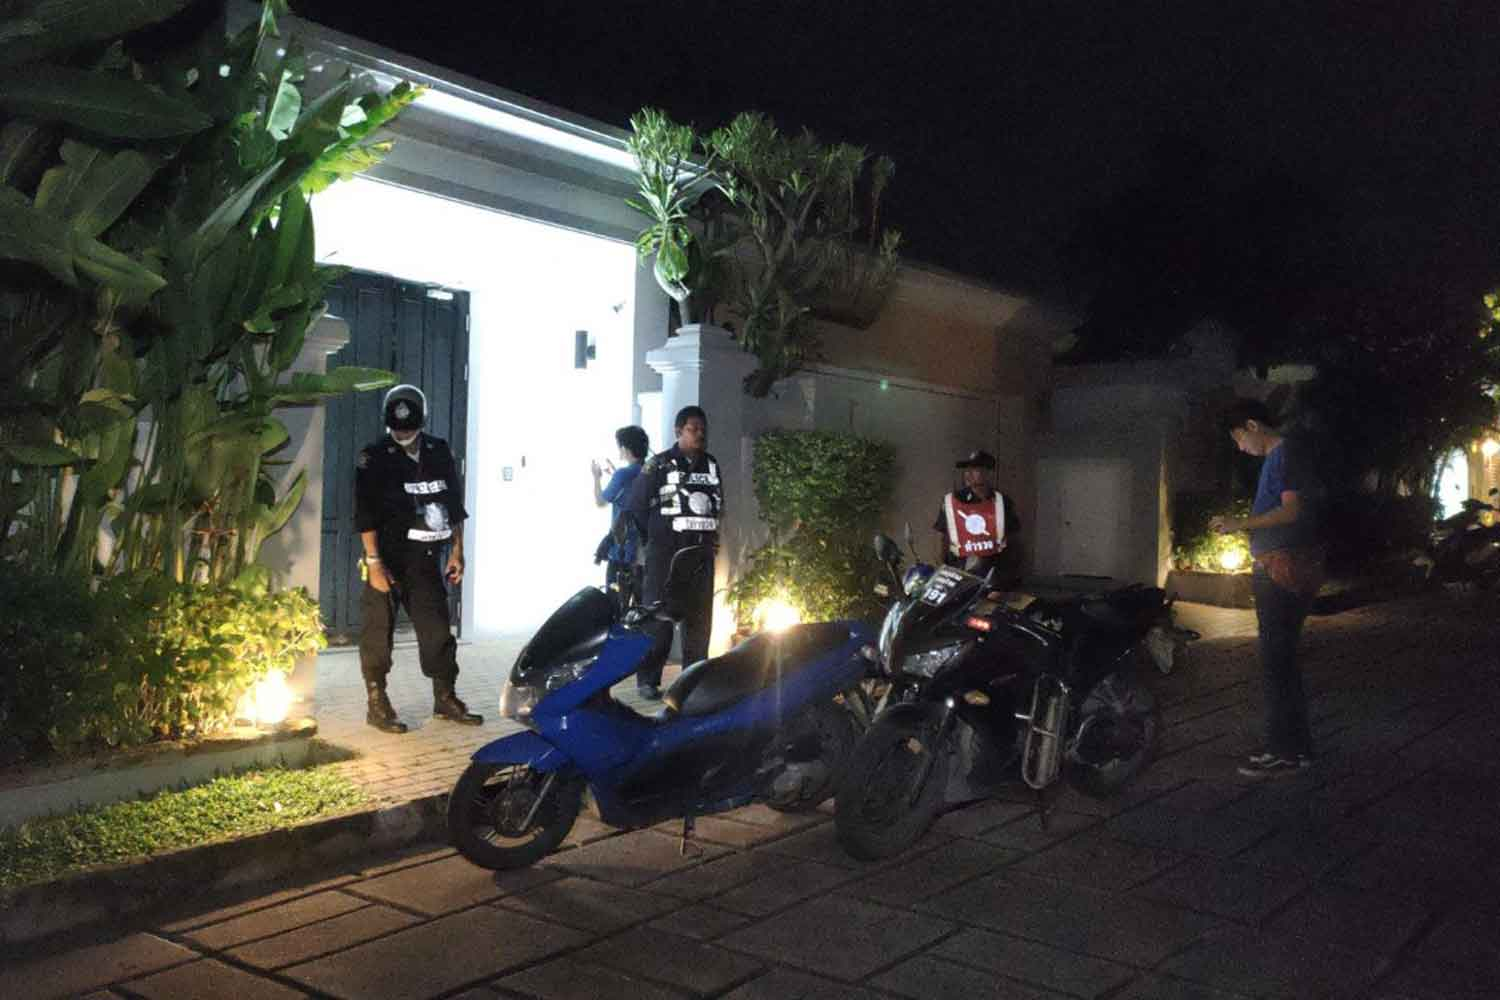 Police at the scene of the holdup at a luxury home in a gated Pattaya housing estate on Monday night. The robbers stole at least 10 million baht in cash and valuables from an unspecified number of Chinese in the house. (Photo: Chaiyot Pupattanapong)